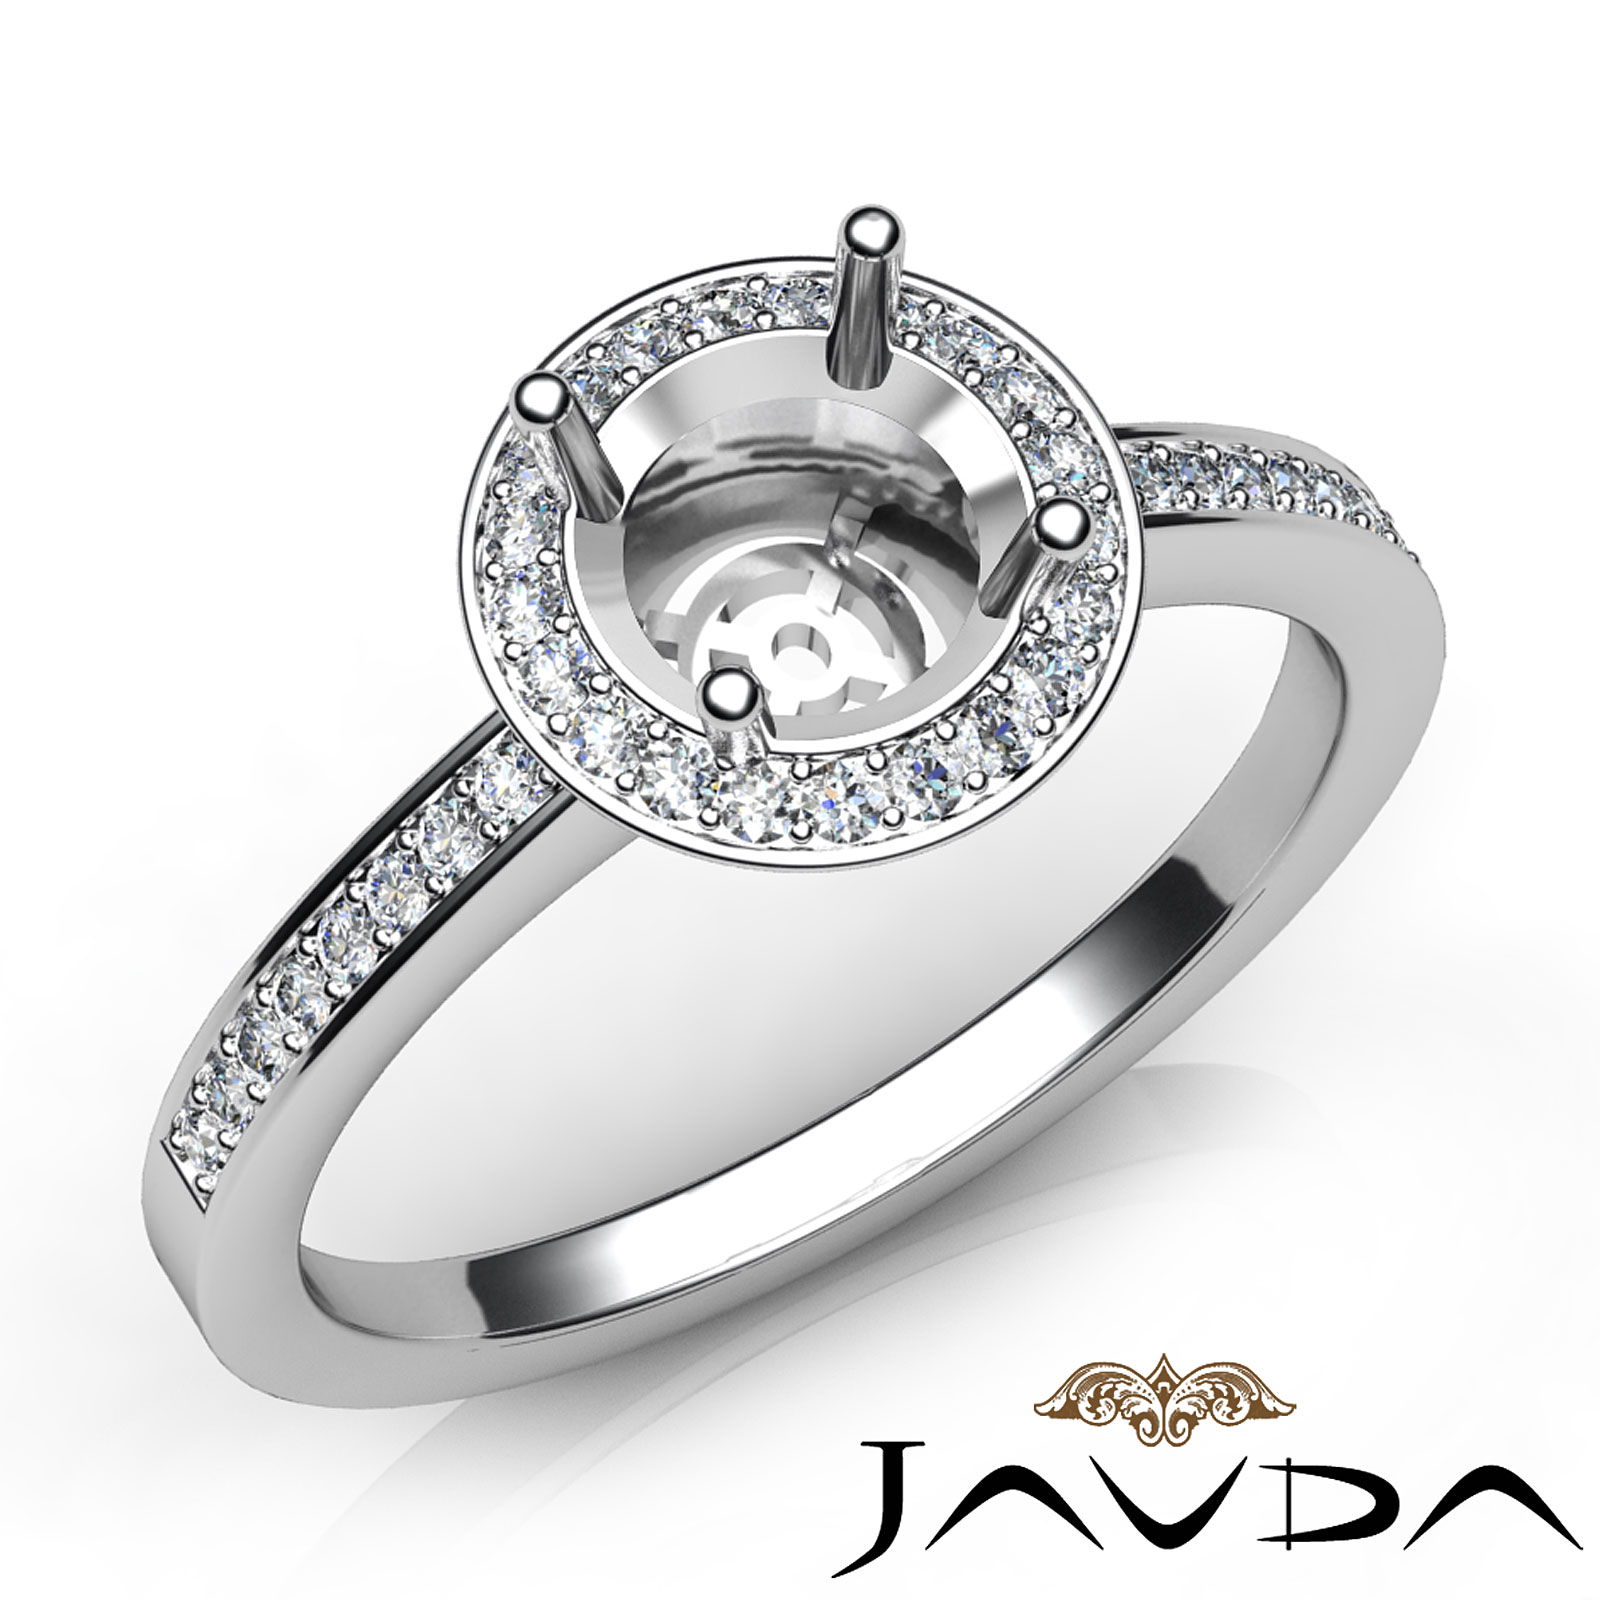 Halo pave set diamond engagement platinum round semi